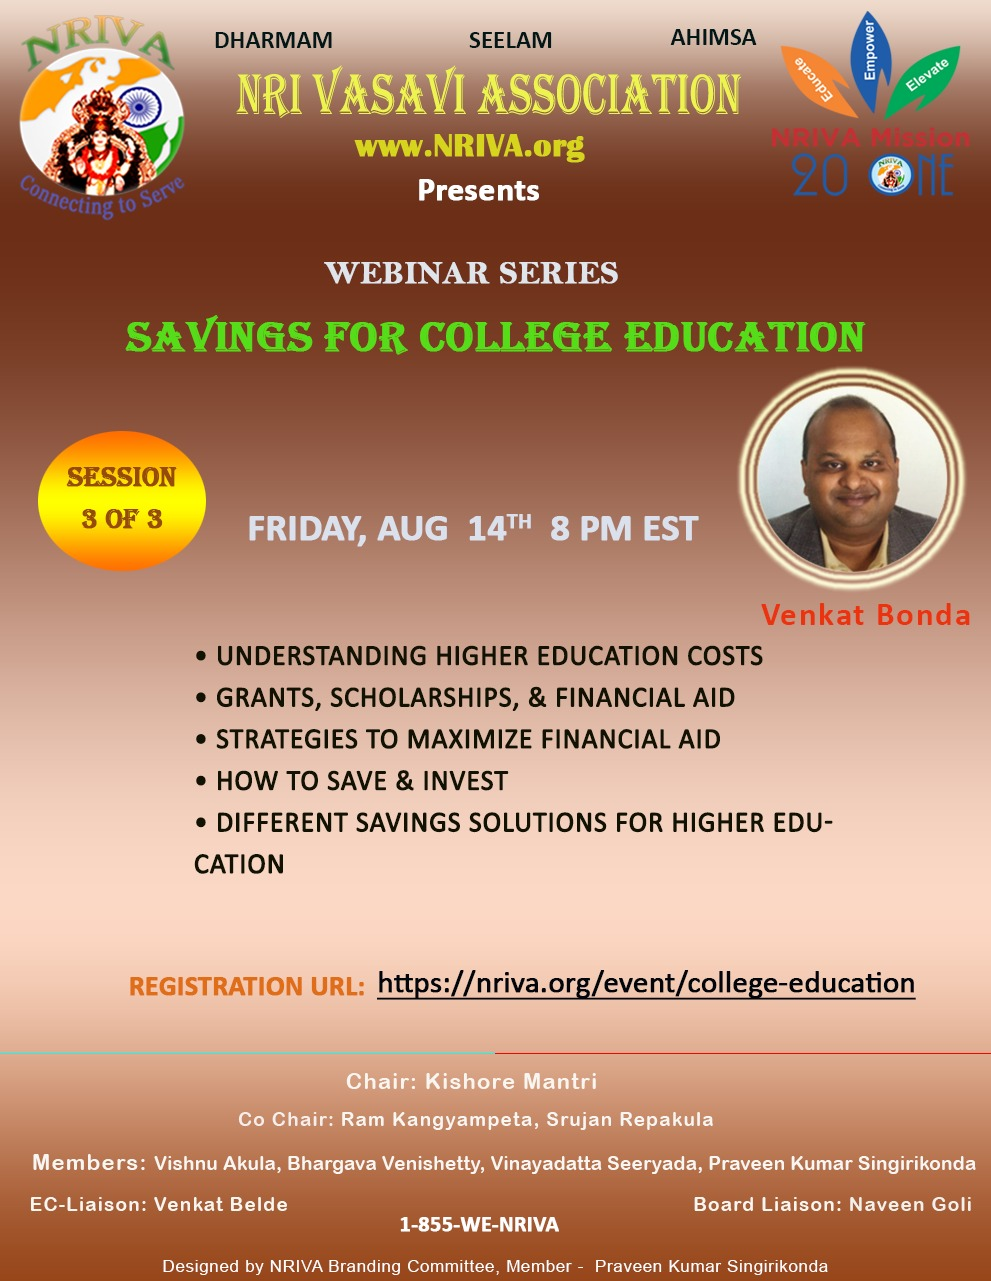 College Education Savings for YOUTH